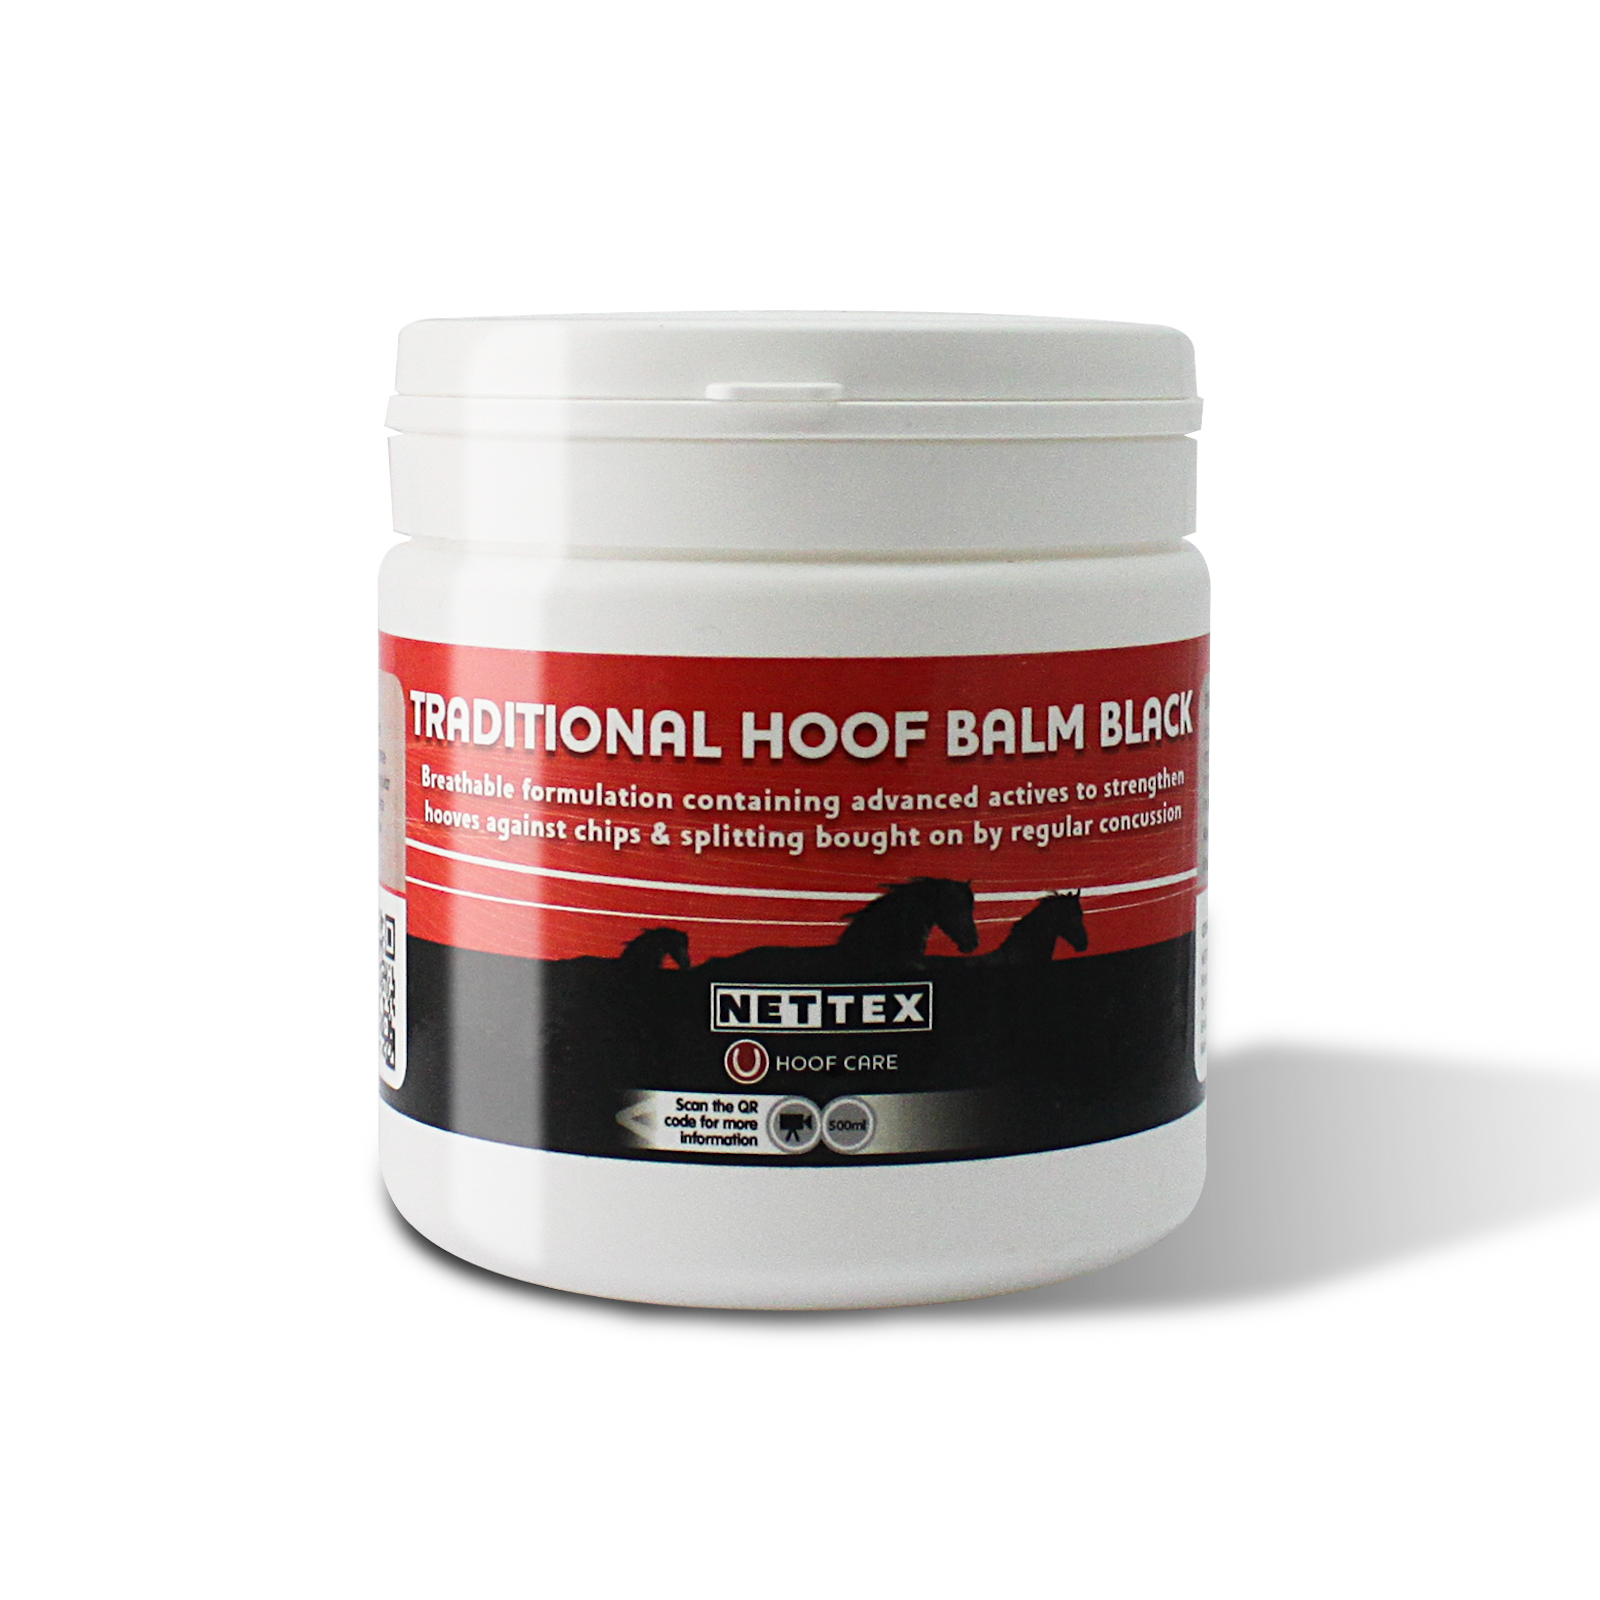 Nettex Traditional Hoof Balm 500 g